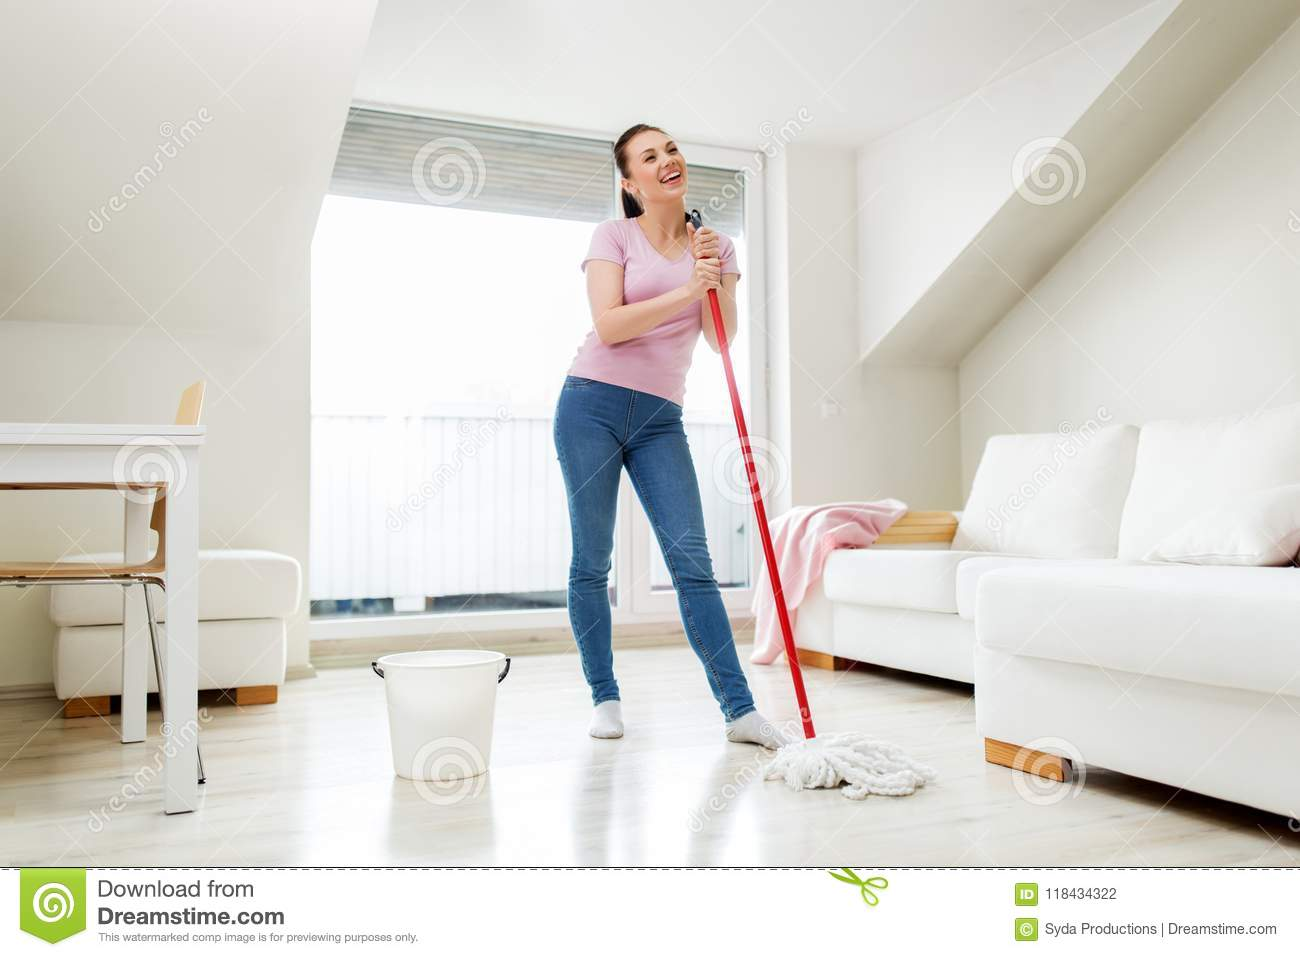 29 Woman Or Housewife With Mop Cleaning Floor At Home Stock Photo ...